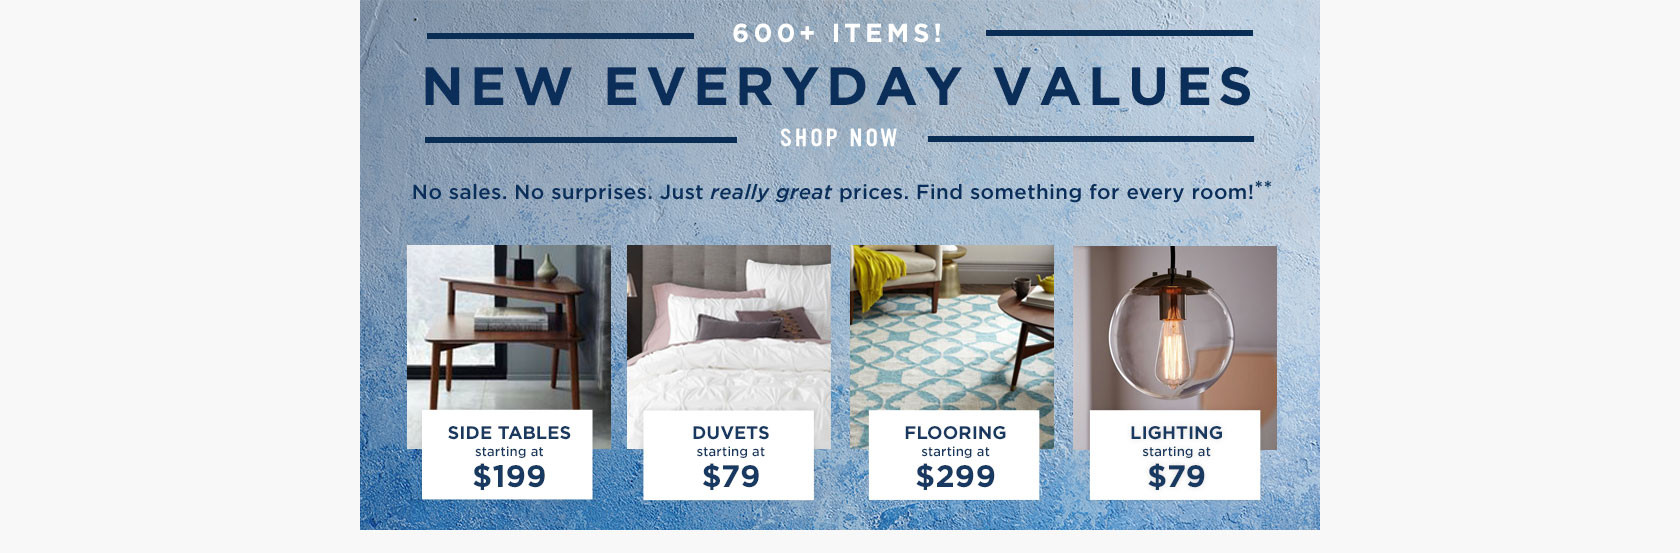 600+ Items! New Everyday Values